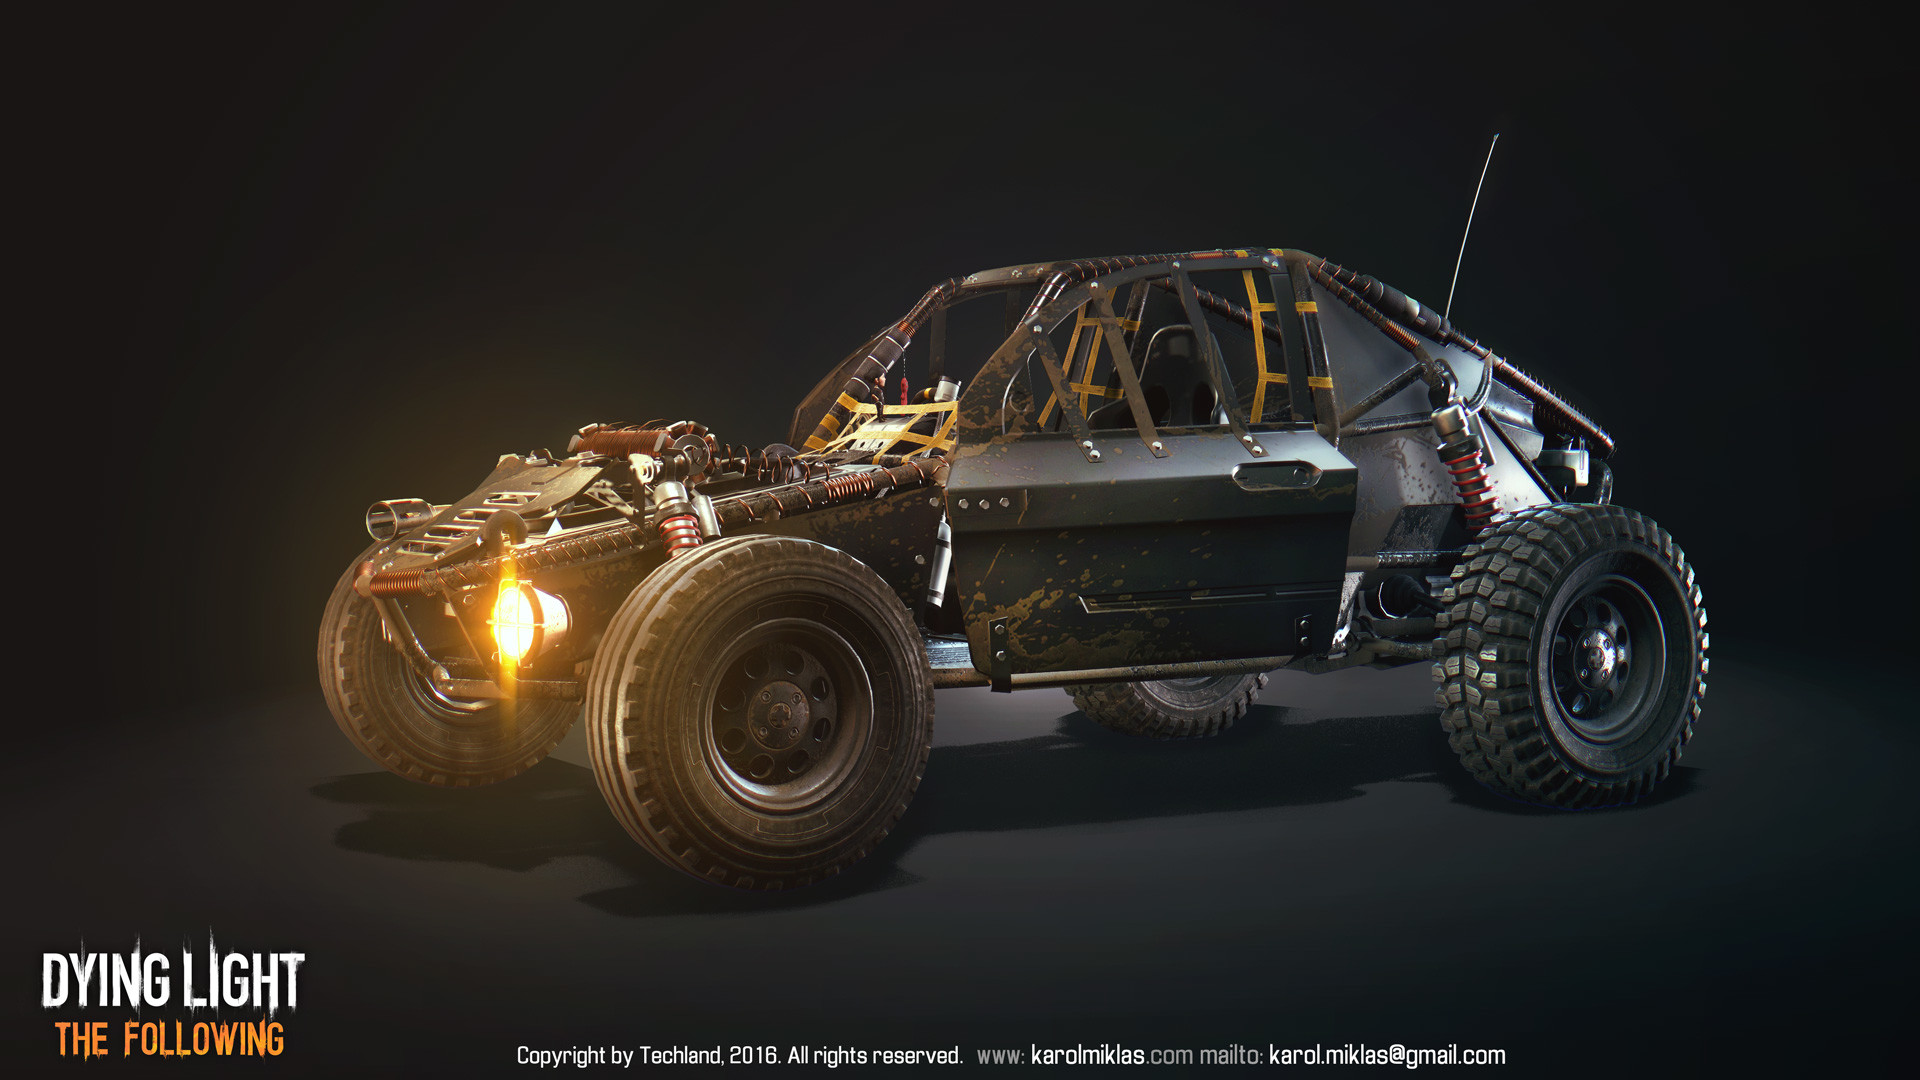 Dying Light The Following Buggy By Kmiklas On Deviantart